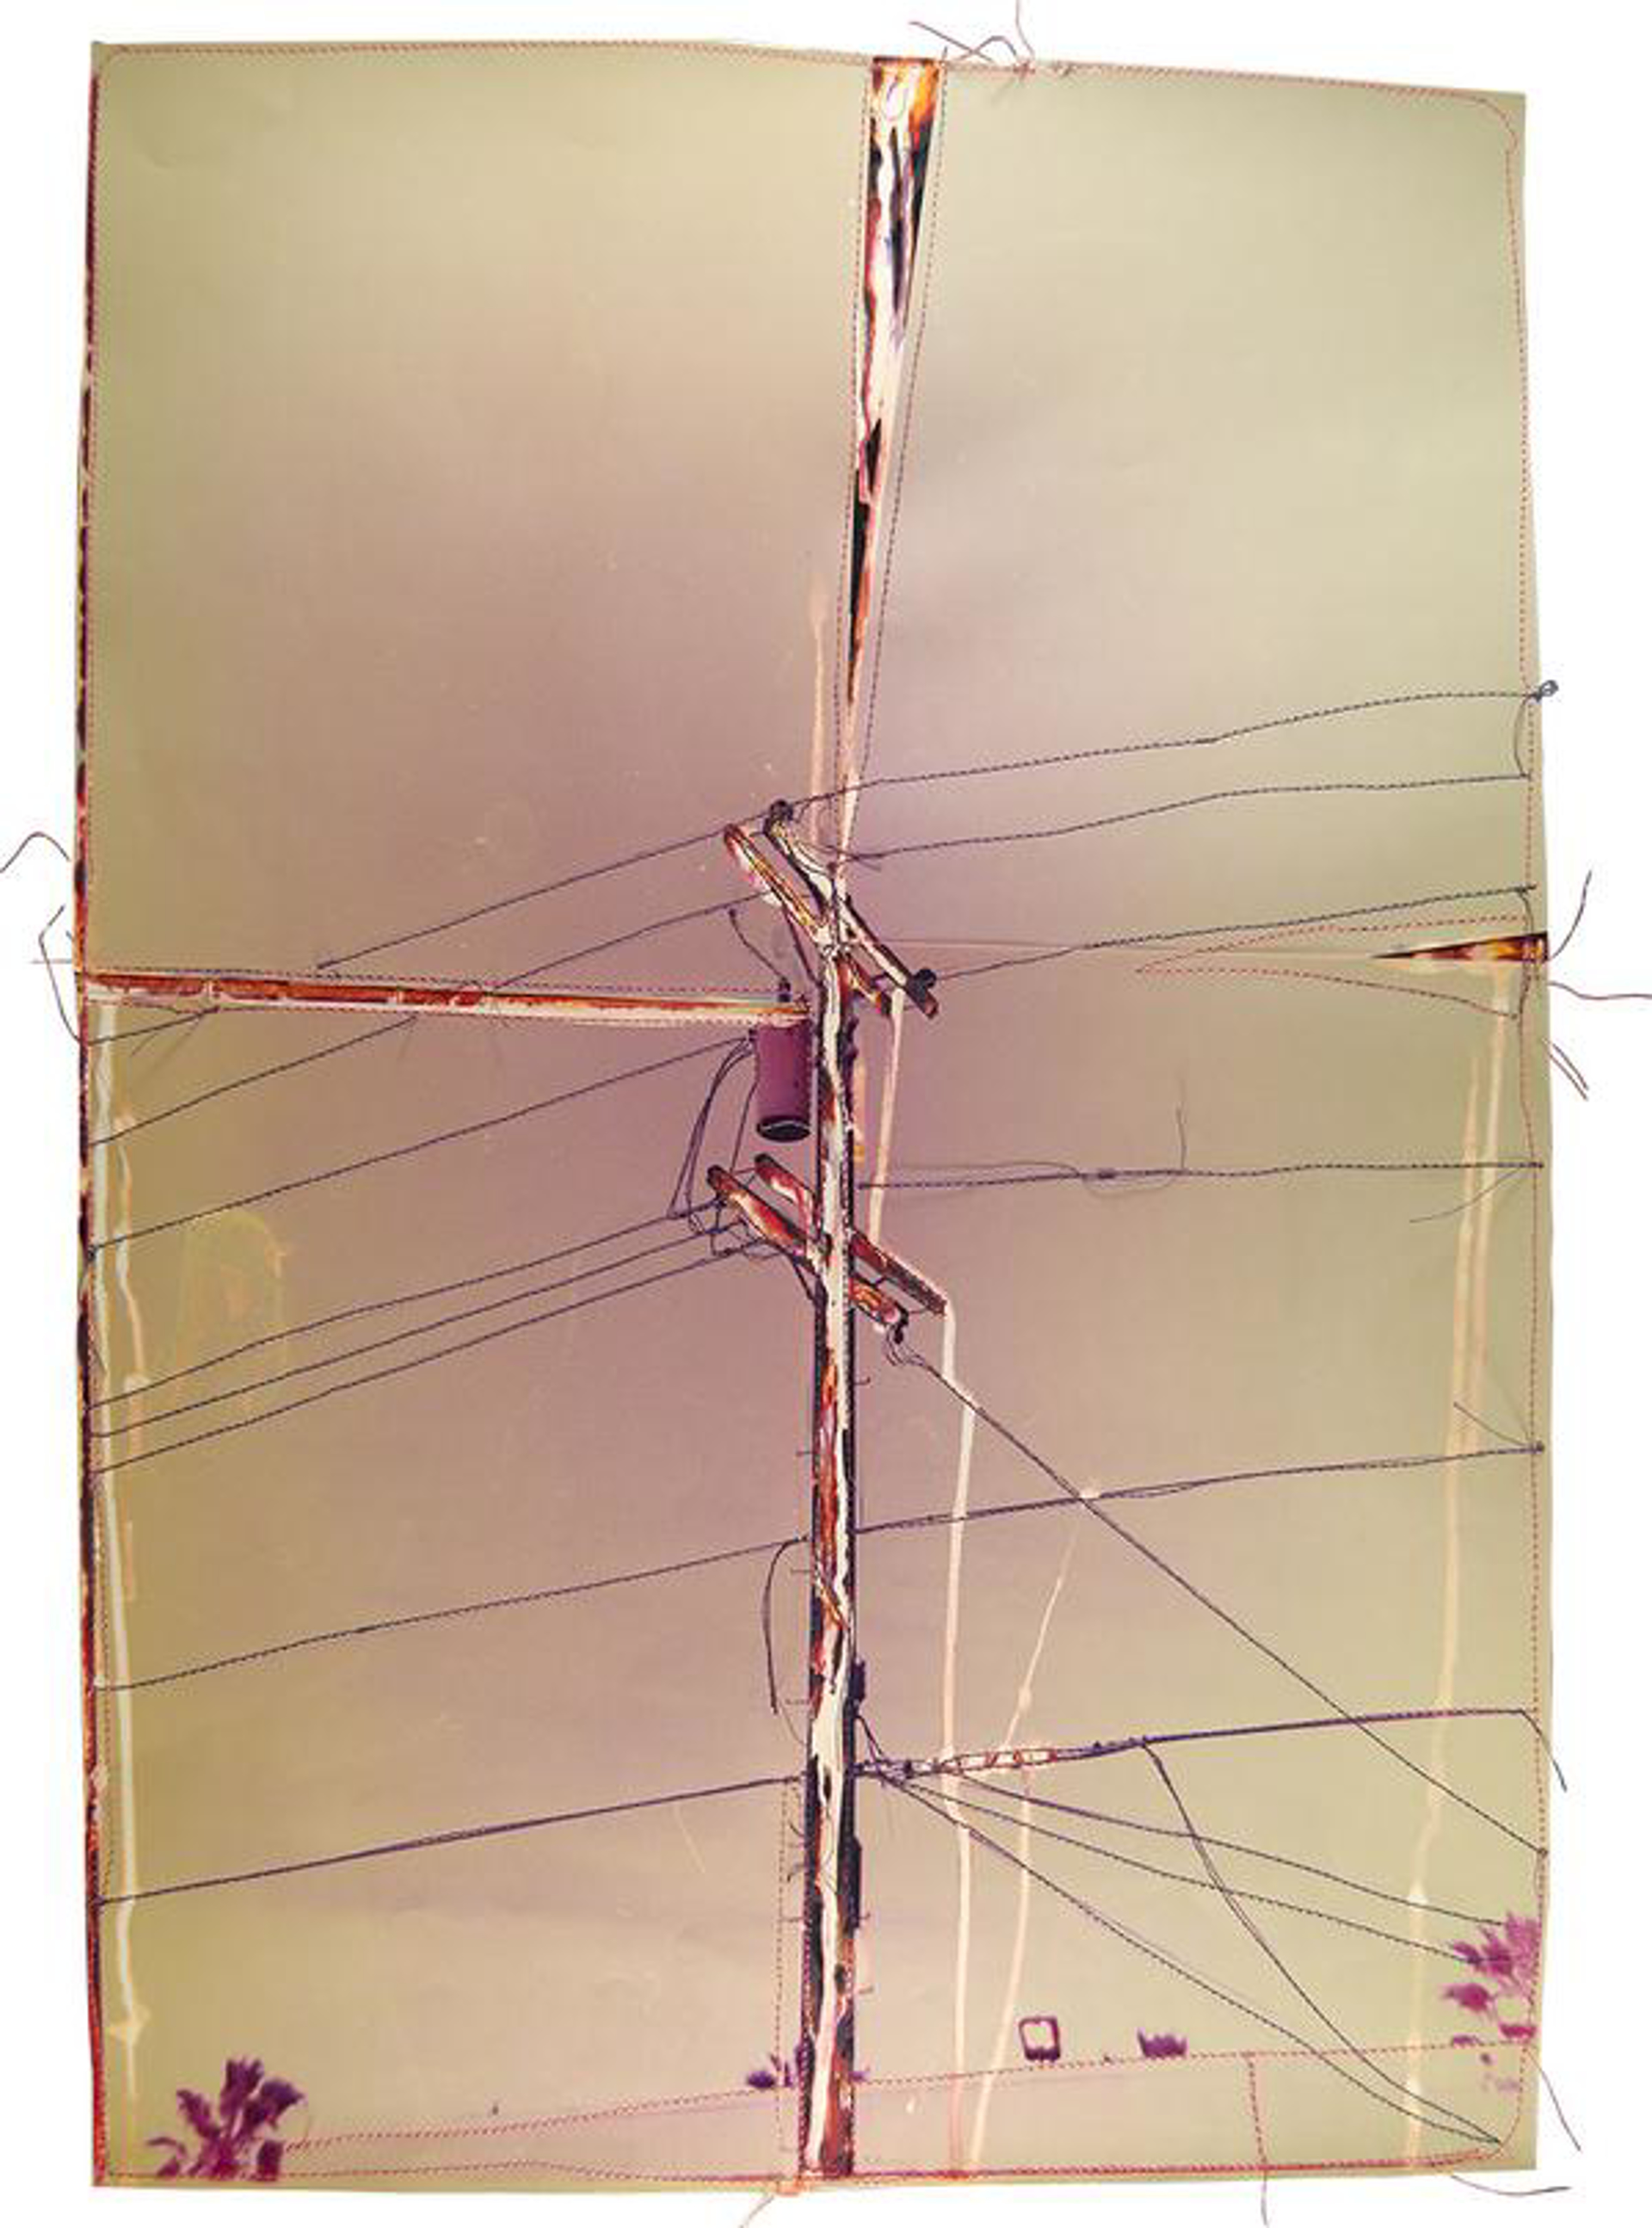 Untitled (Purple Power Line Assembled) by Andrew Thompson